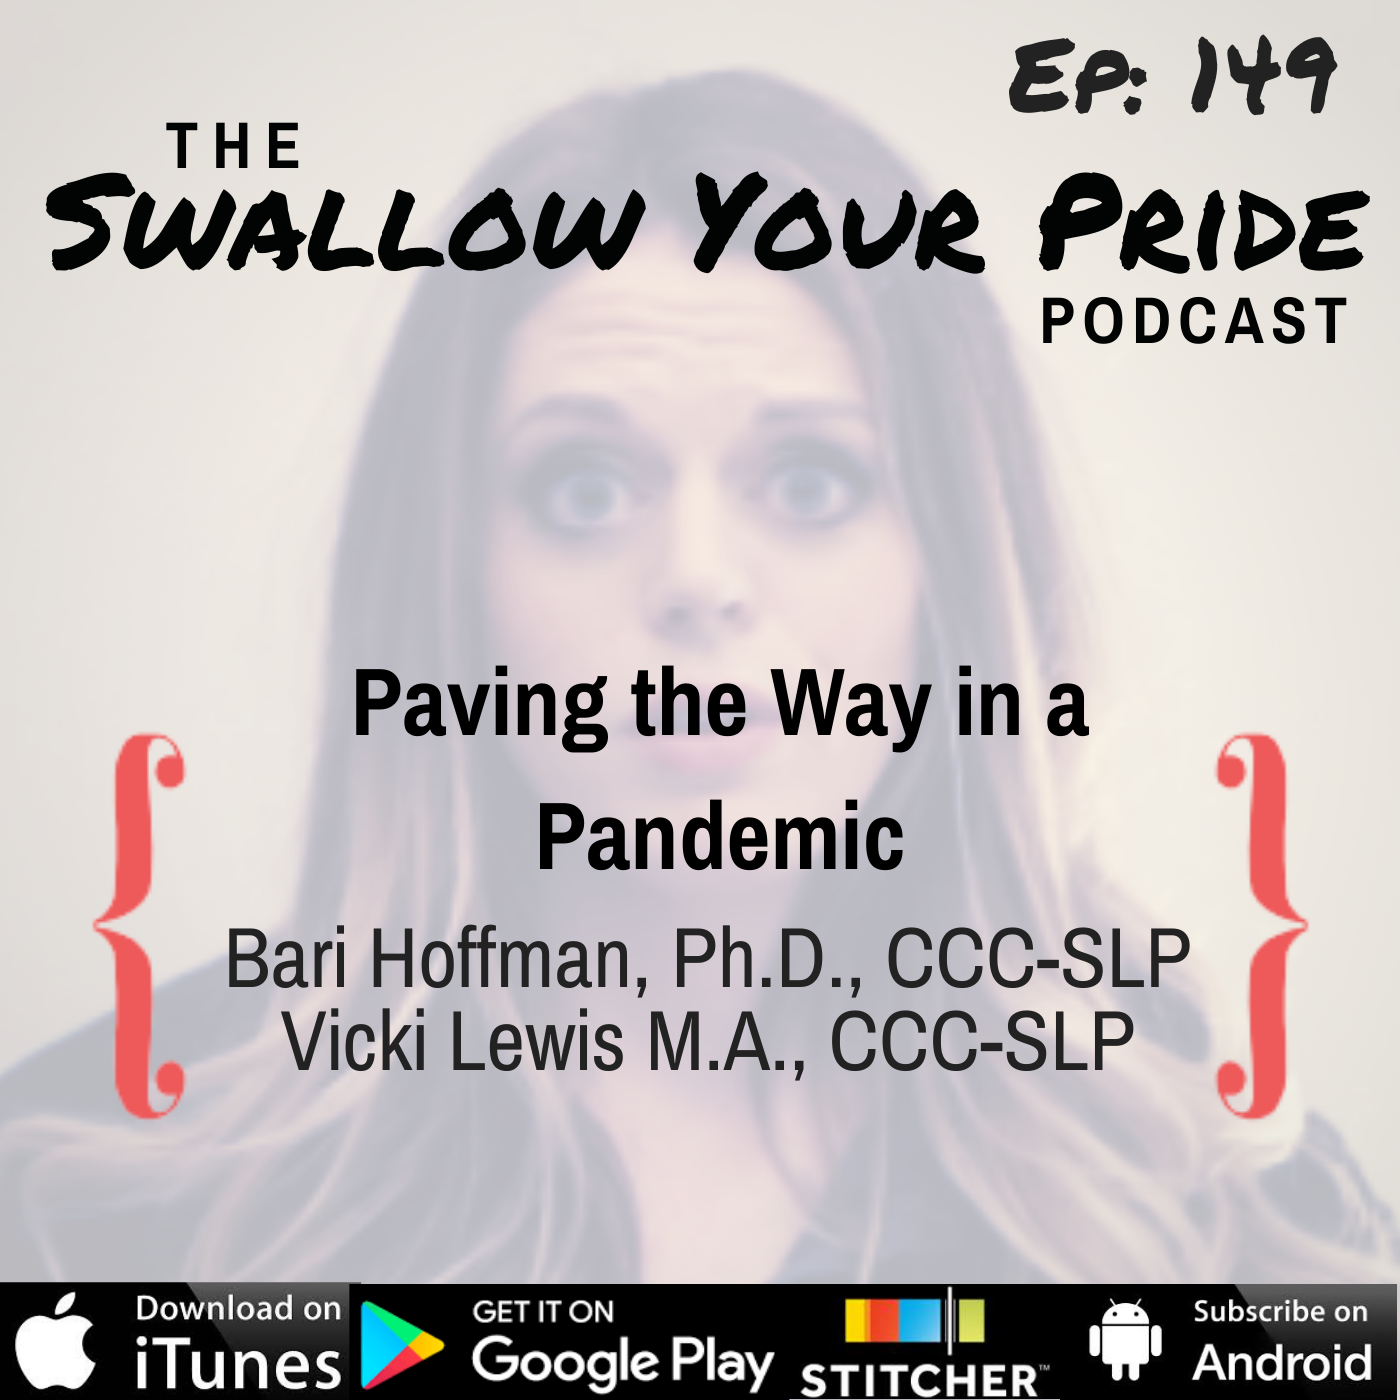 149 – Paving the Way in a Pandemic – Bari Hoffman, Ph.D., CCC-SLP and Vicki Lewis, M.A., CCC-SLP